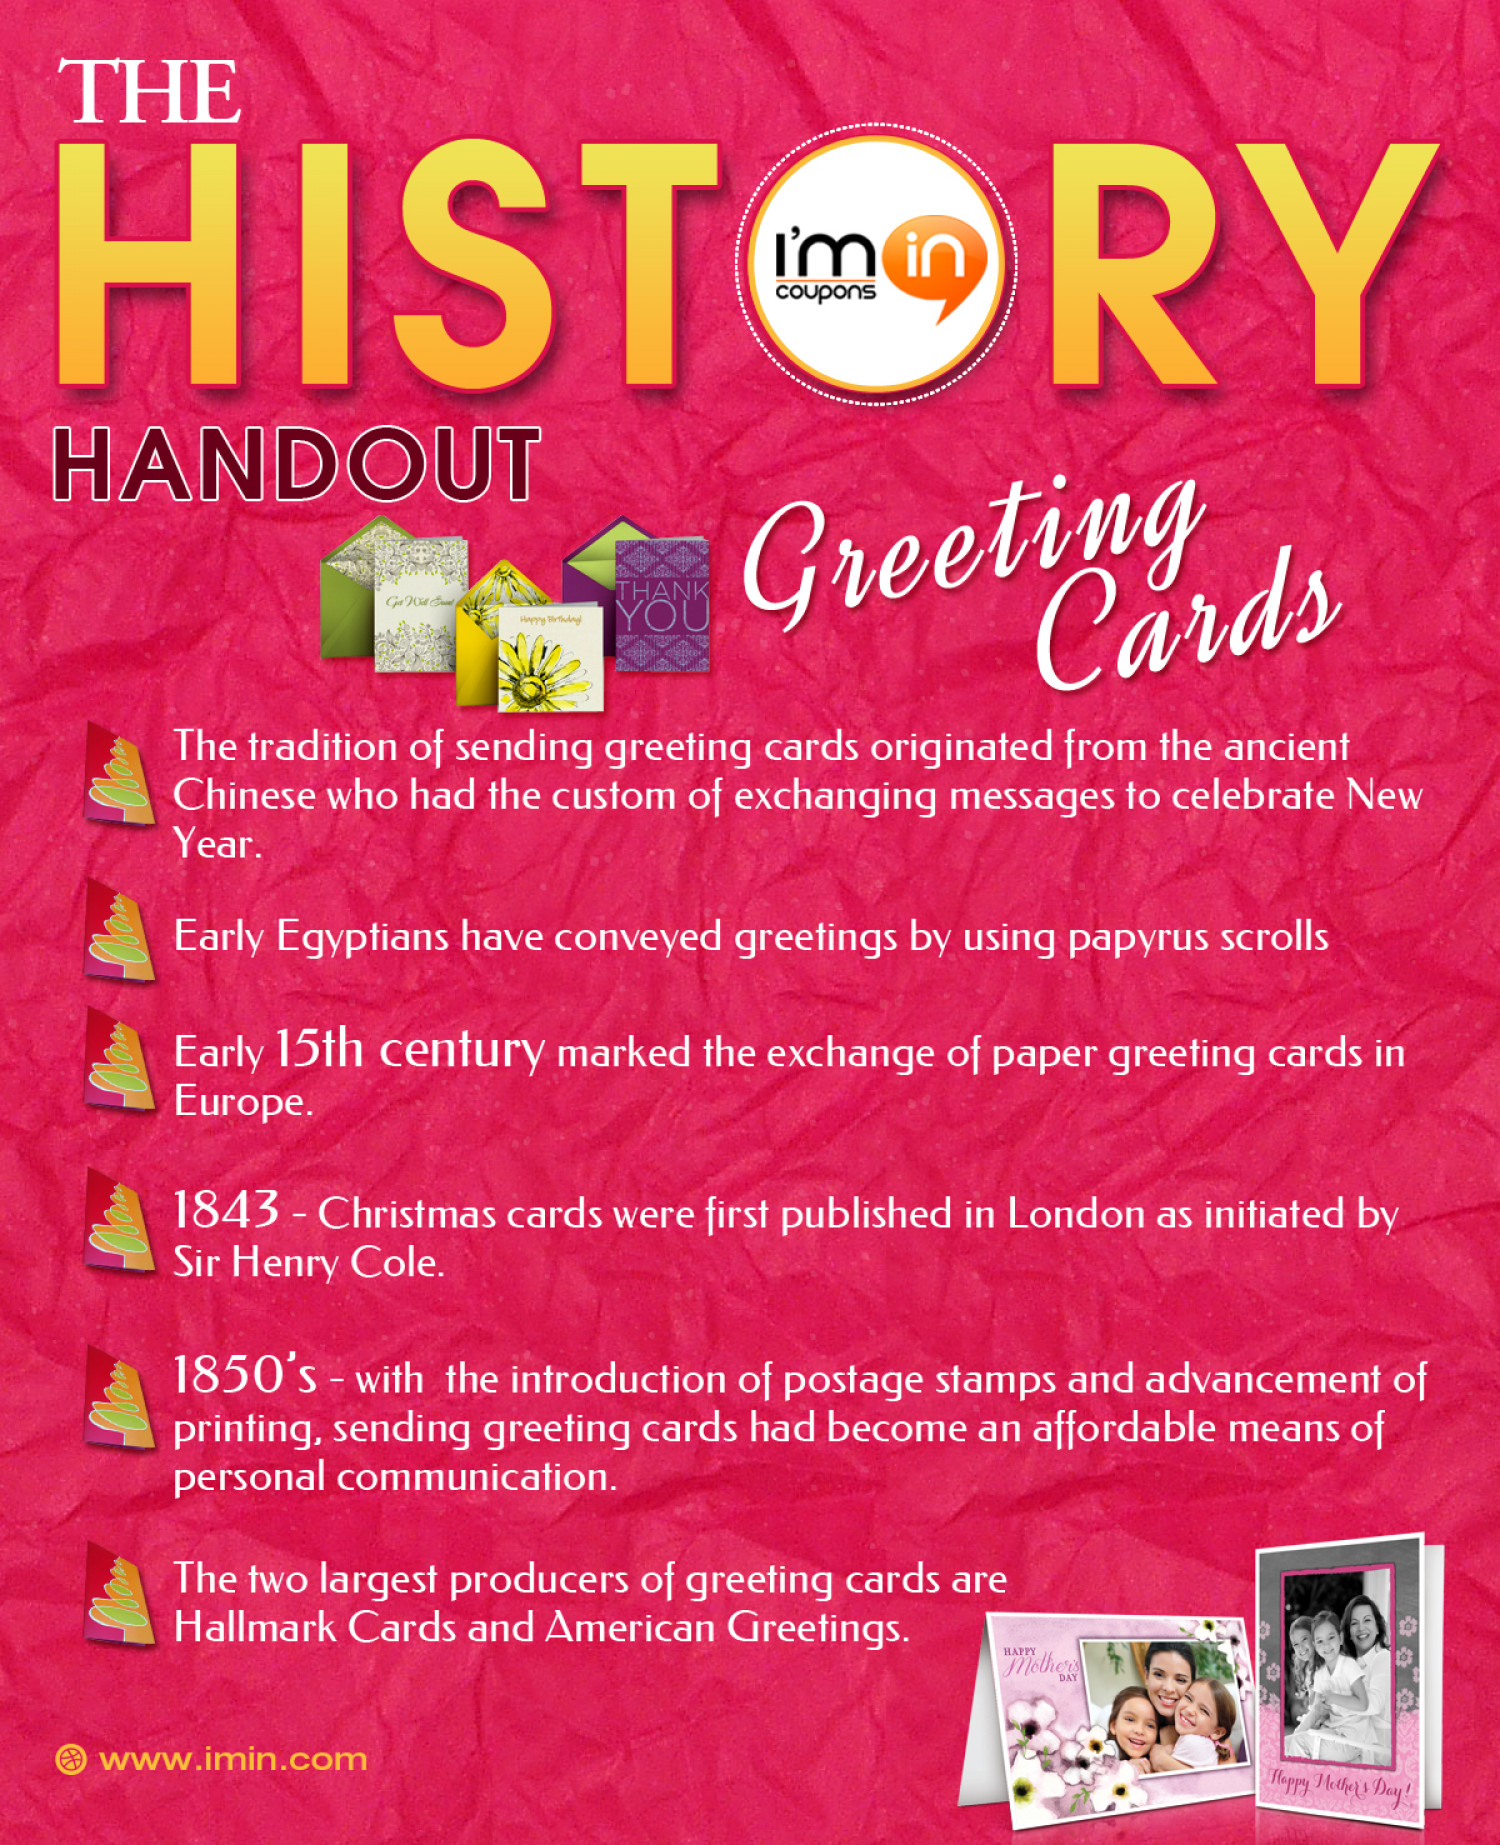 The History Handout Greeting Cards Visual